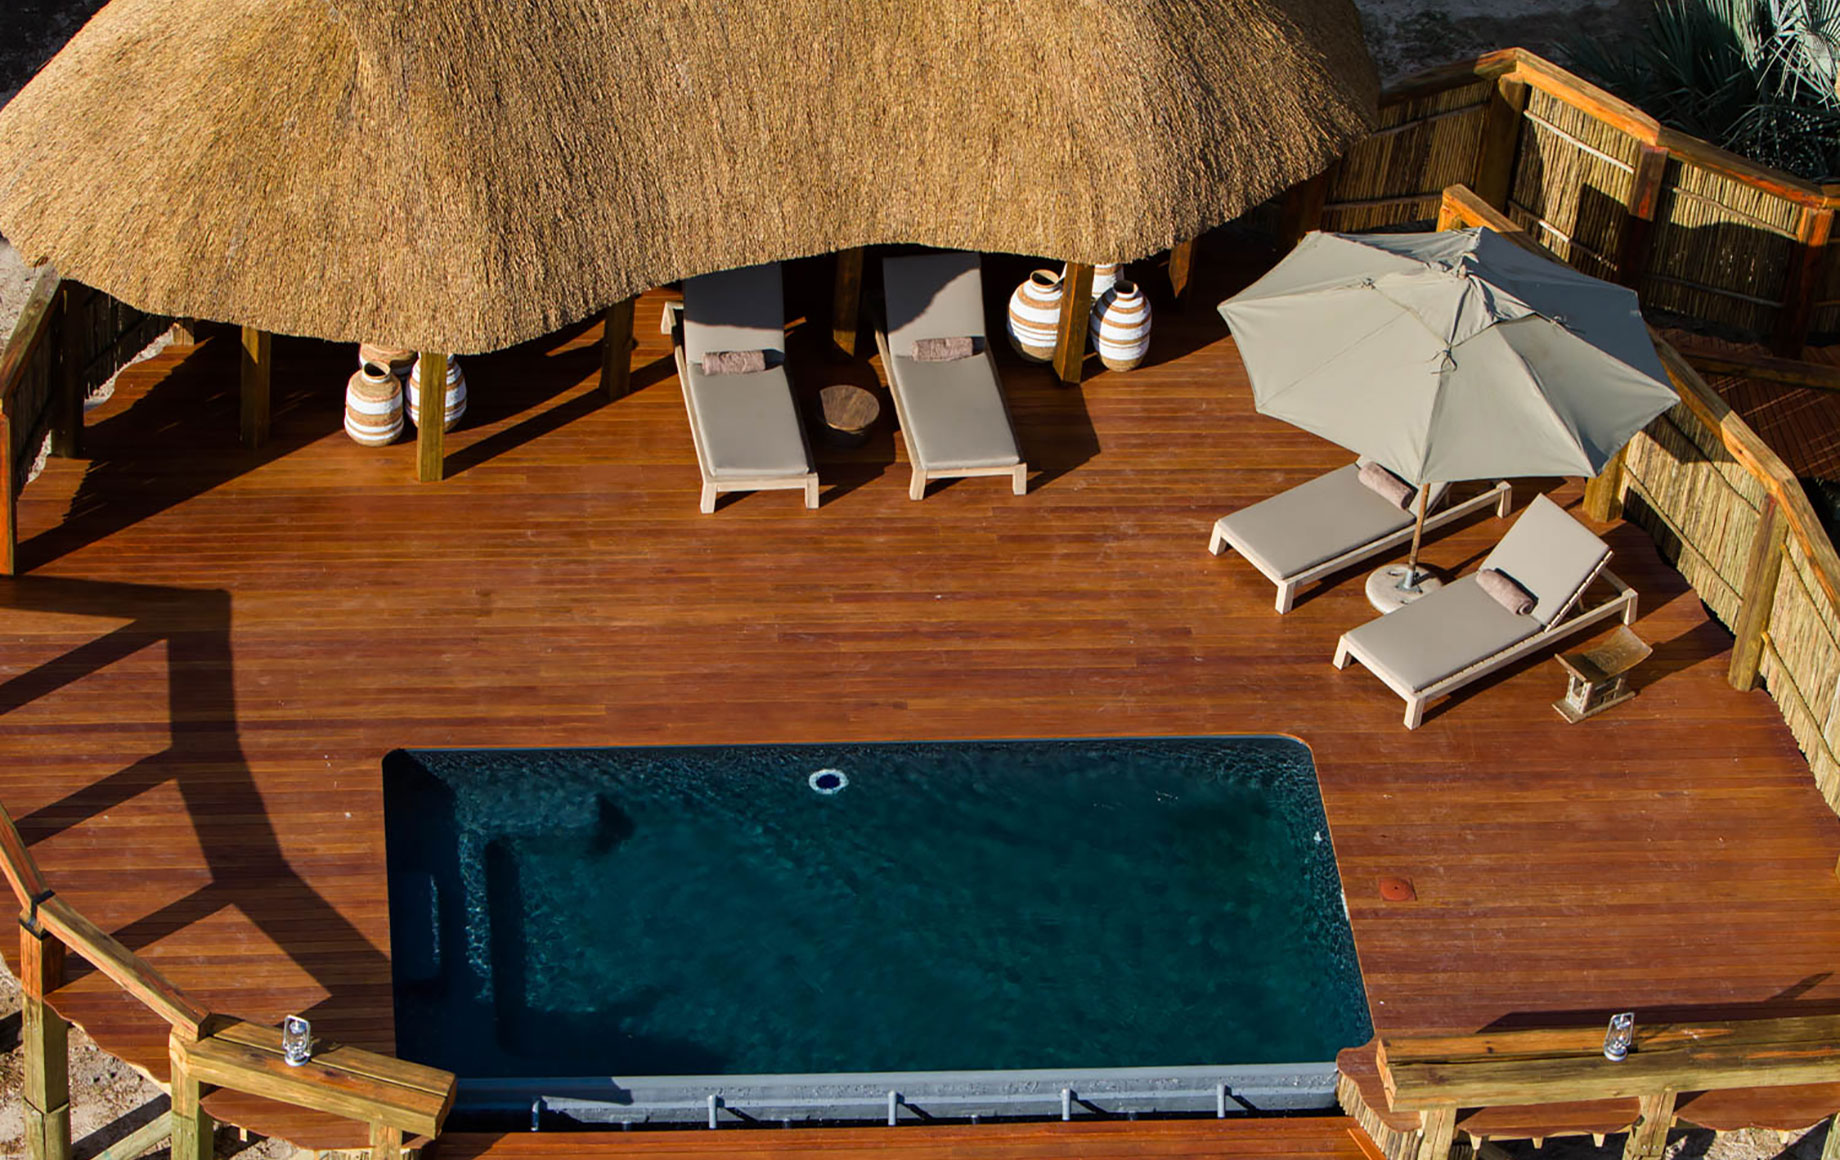 an aerial photo of a deck with a pool at Camp Okavango